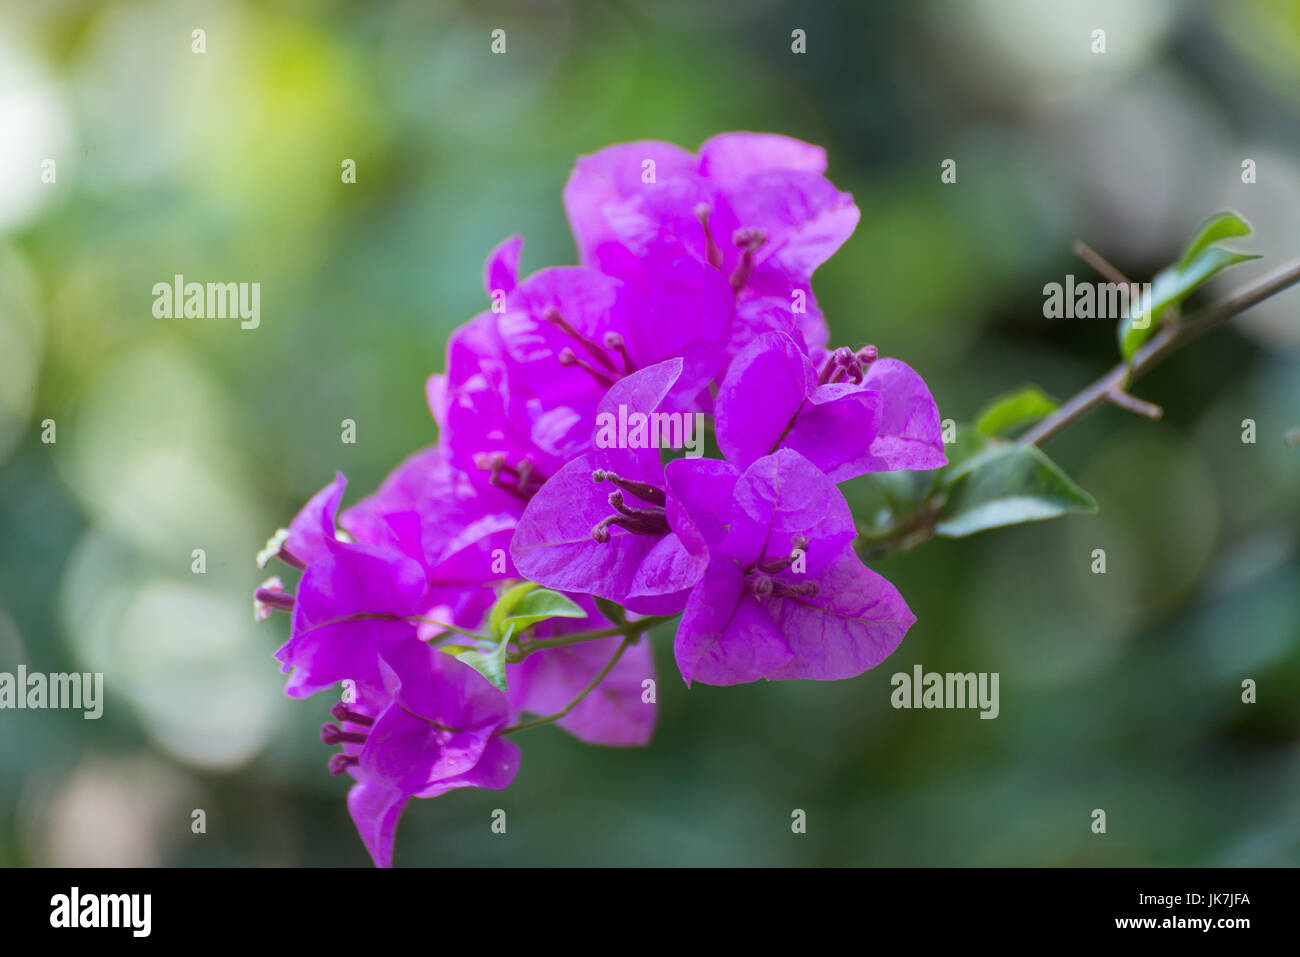 Pink bougainvillea flower or paper flower with leaves in the garden pink bougainvillea flower or paper flower with leaves in the garden plant background blurry asian flowers shallow focus mightylinksfo